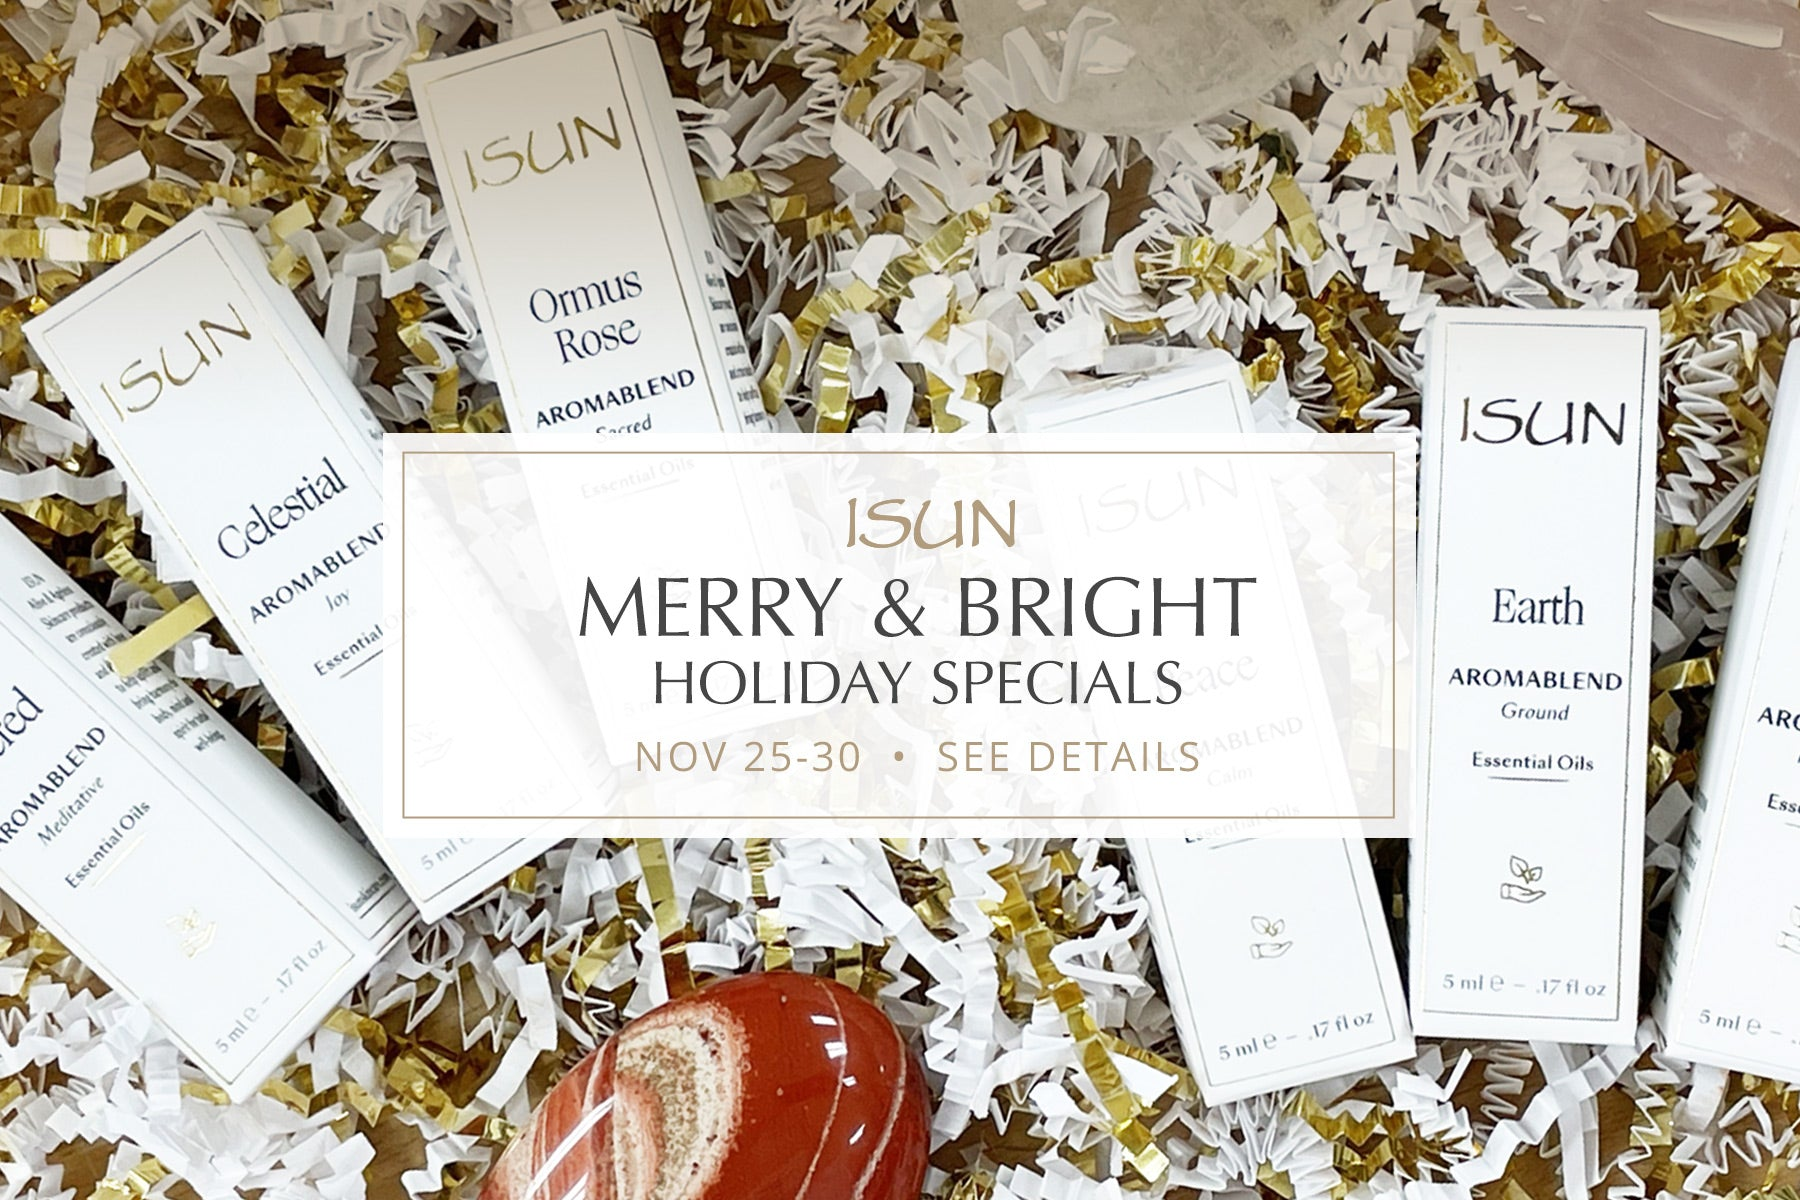 isun skincare black friday small business saturday cyber monday holiday specials